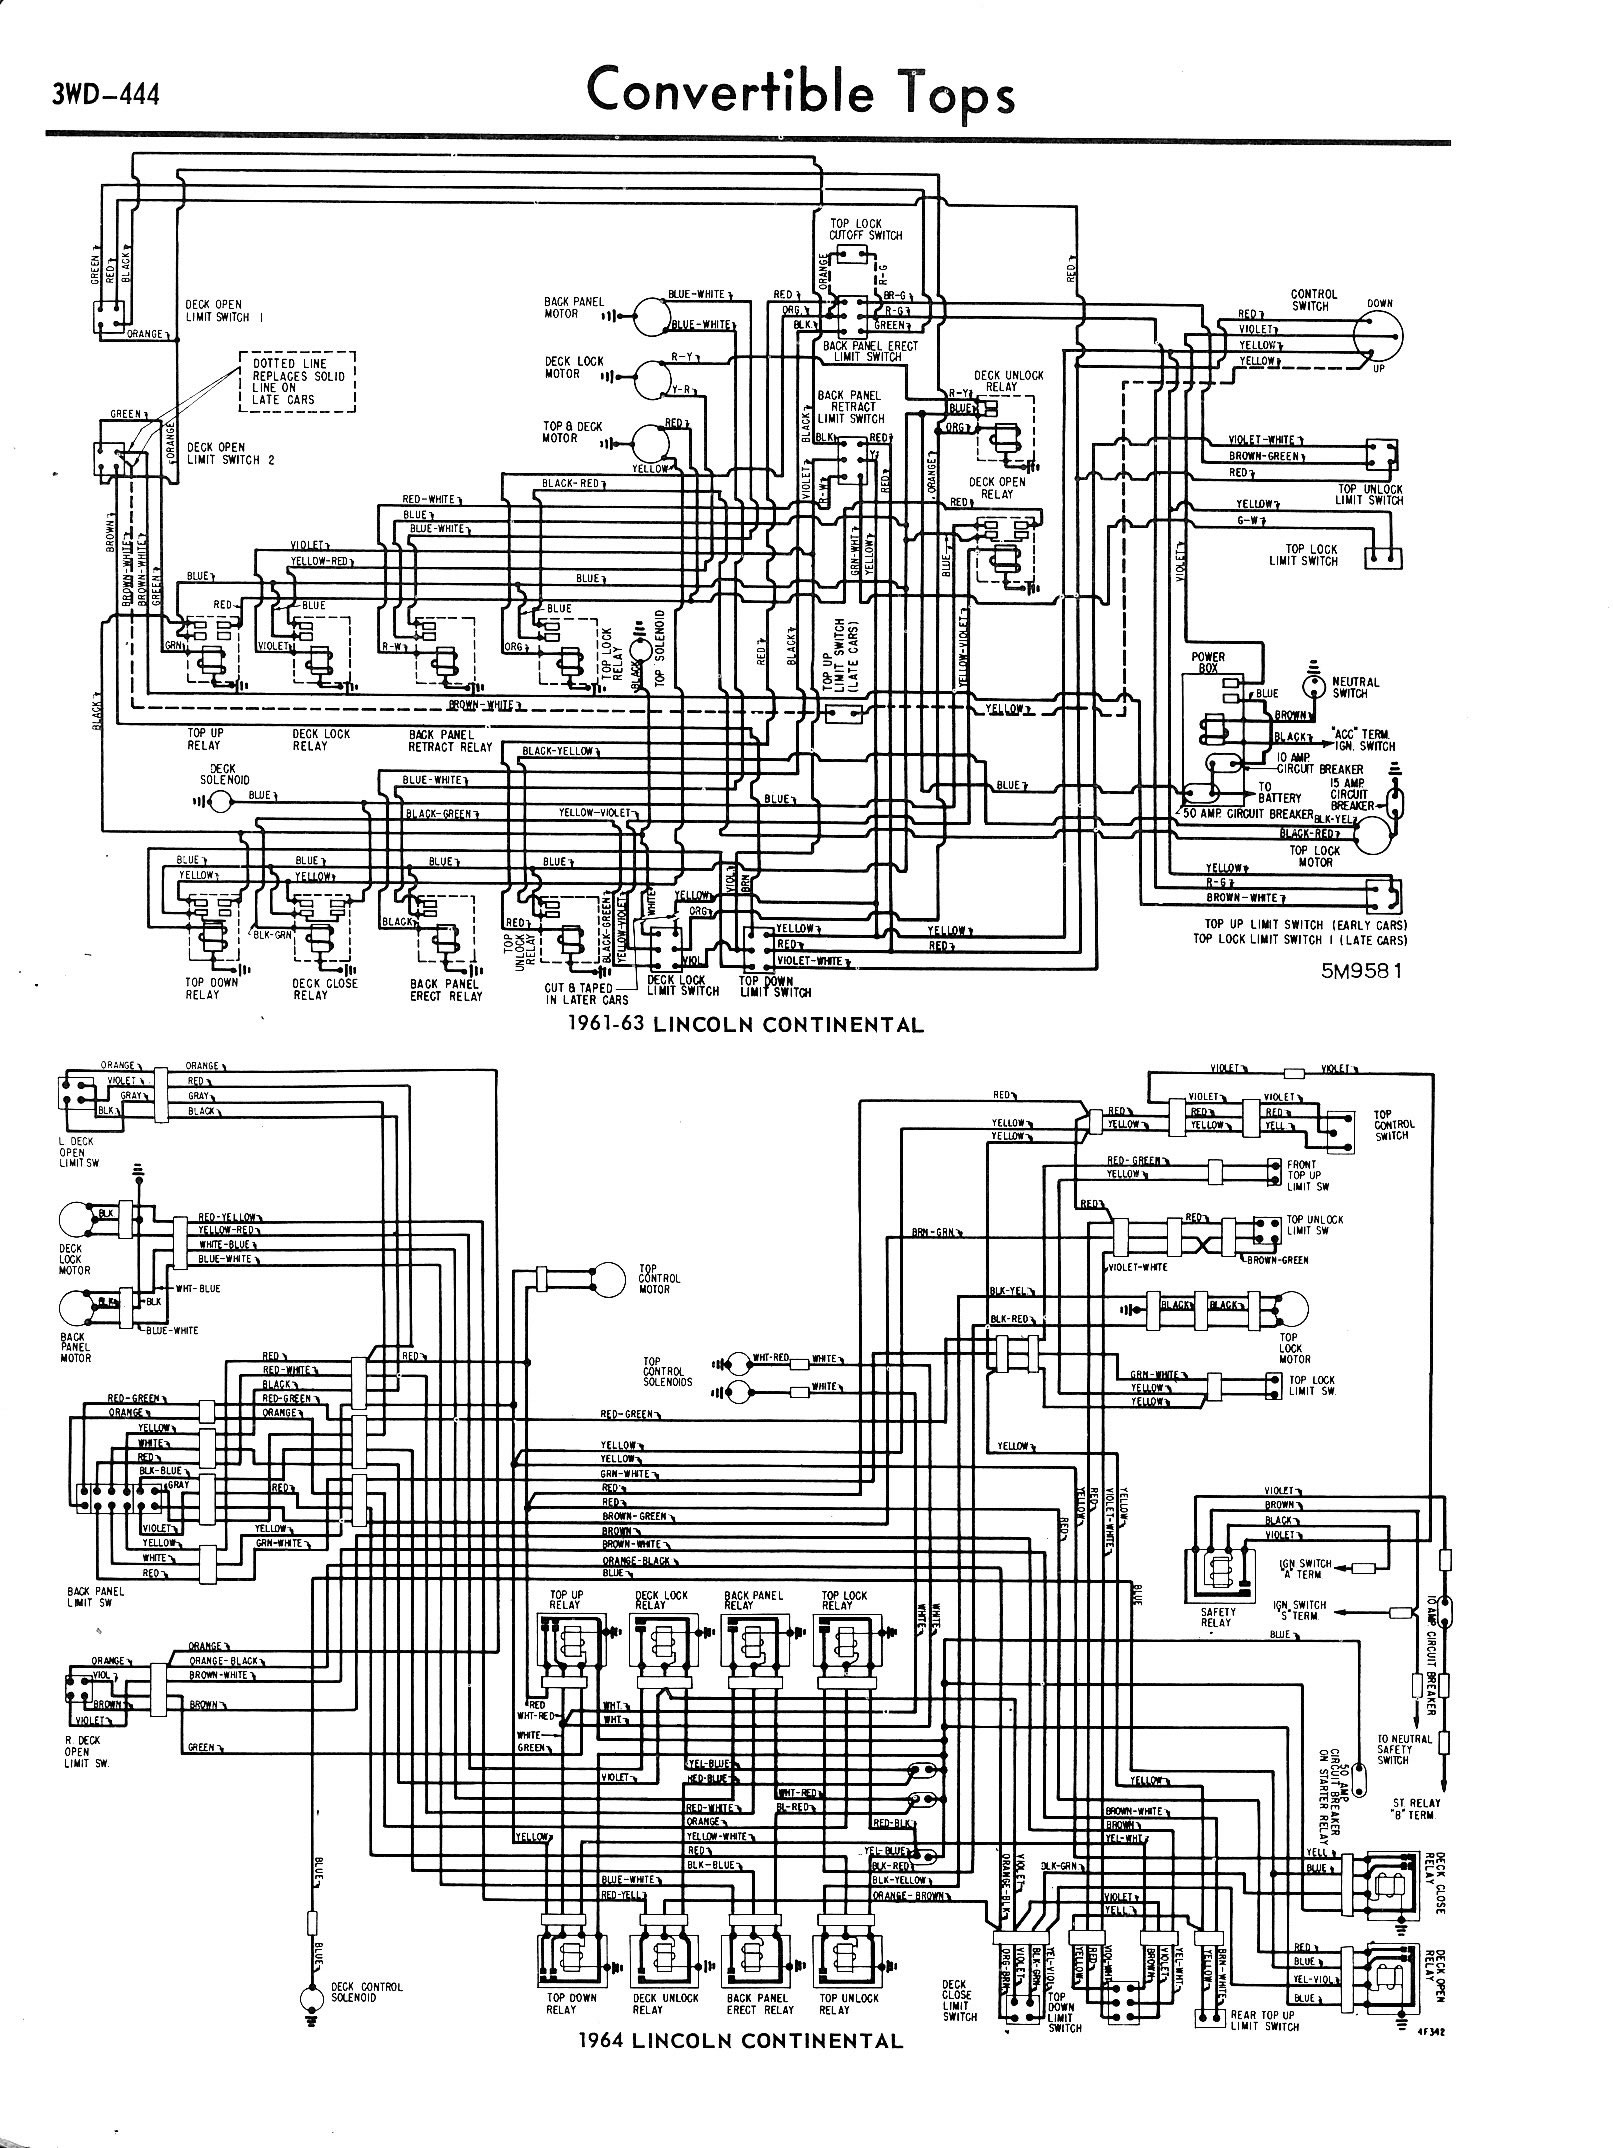 Wiring Diagram For 1959 Lincoln And Continental - Wiring Diagram Article